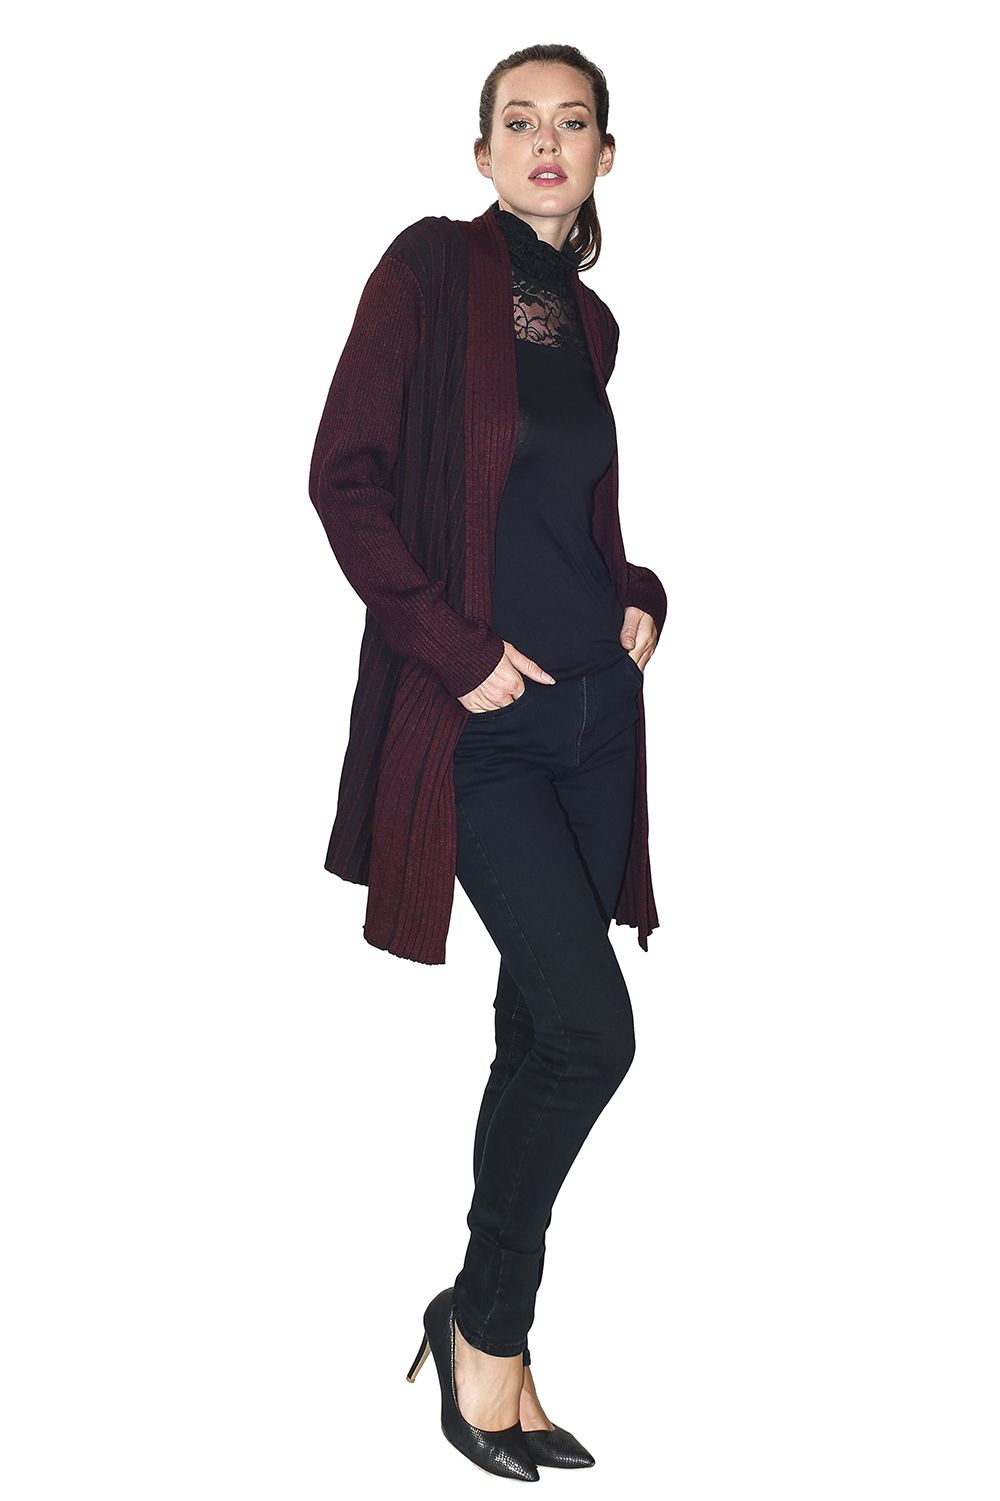 Assuili Long Sleeve Textured Mesh Open Cardigan (Large Fit) in Maroon